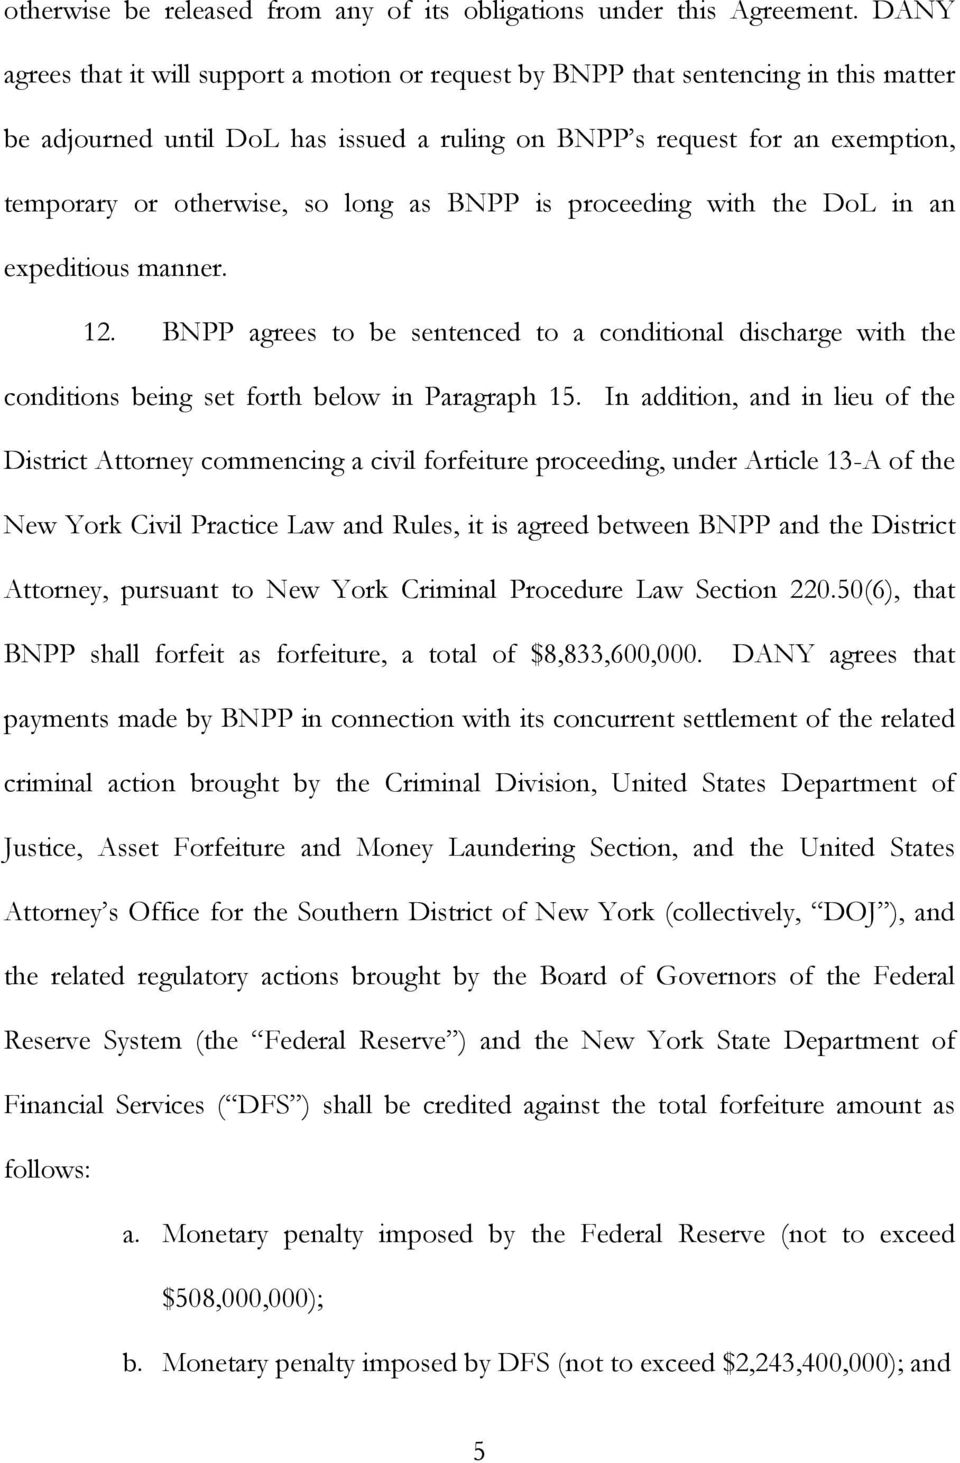 long as BNPP is proceeding with the DoL in an expeditious manner. 12. BNPP agrees to be sentenced to a conditional discharge with the conditions being set forth below in Paragraph 15.